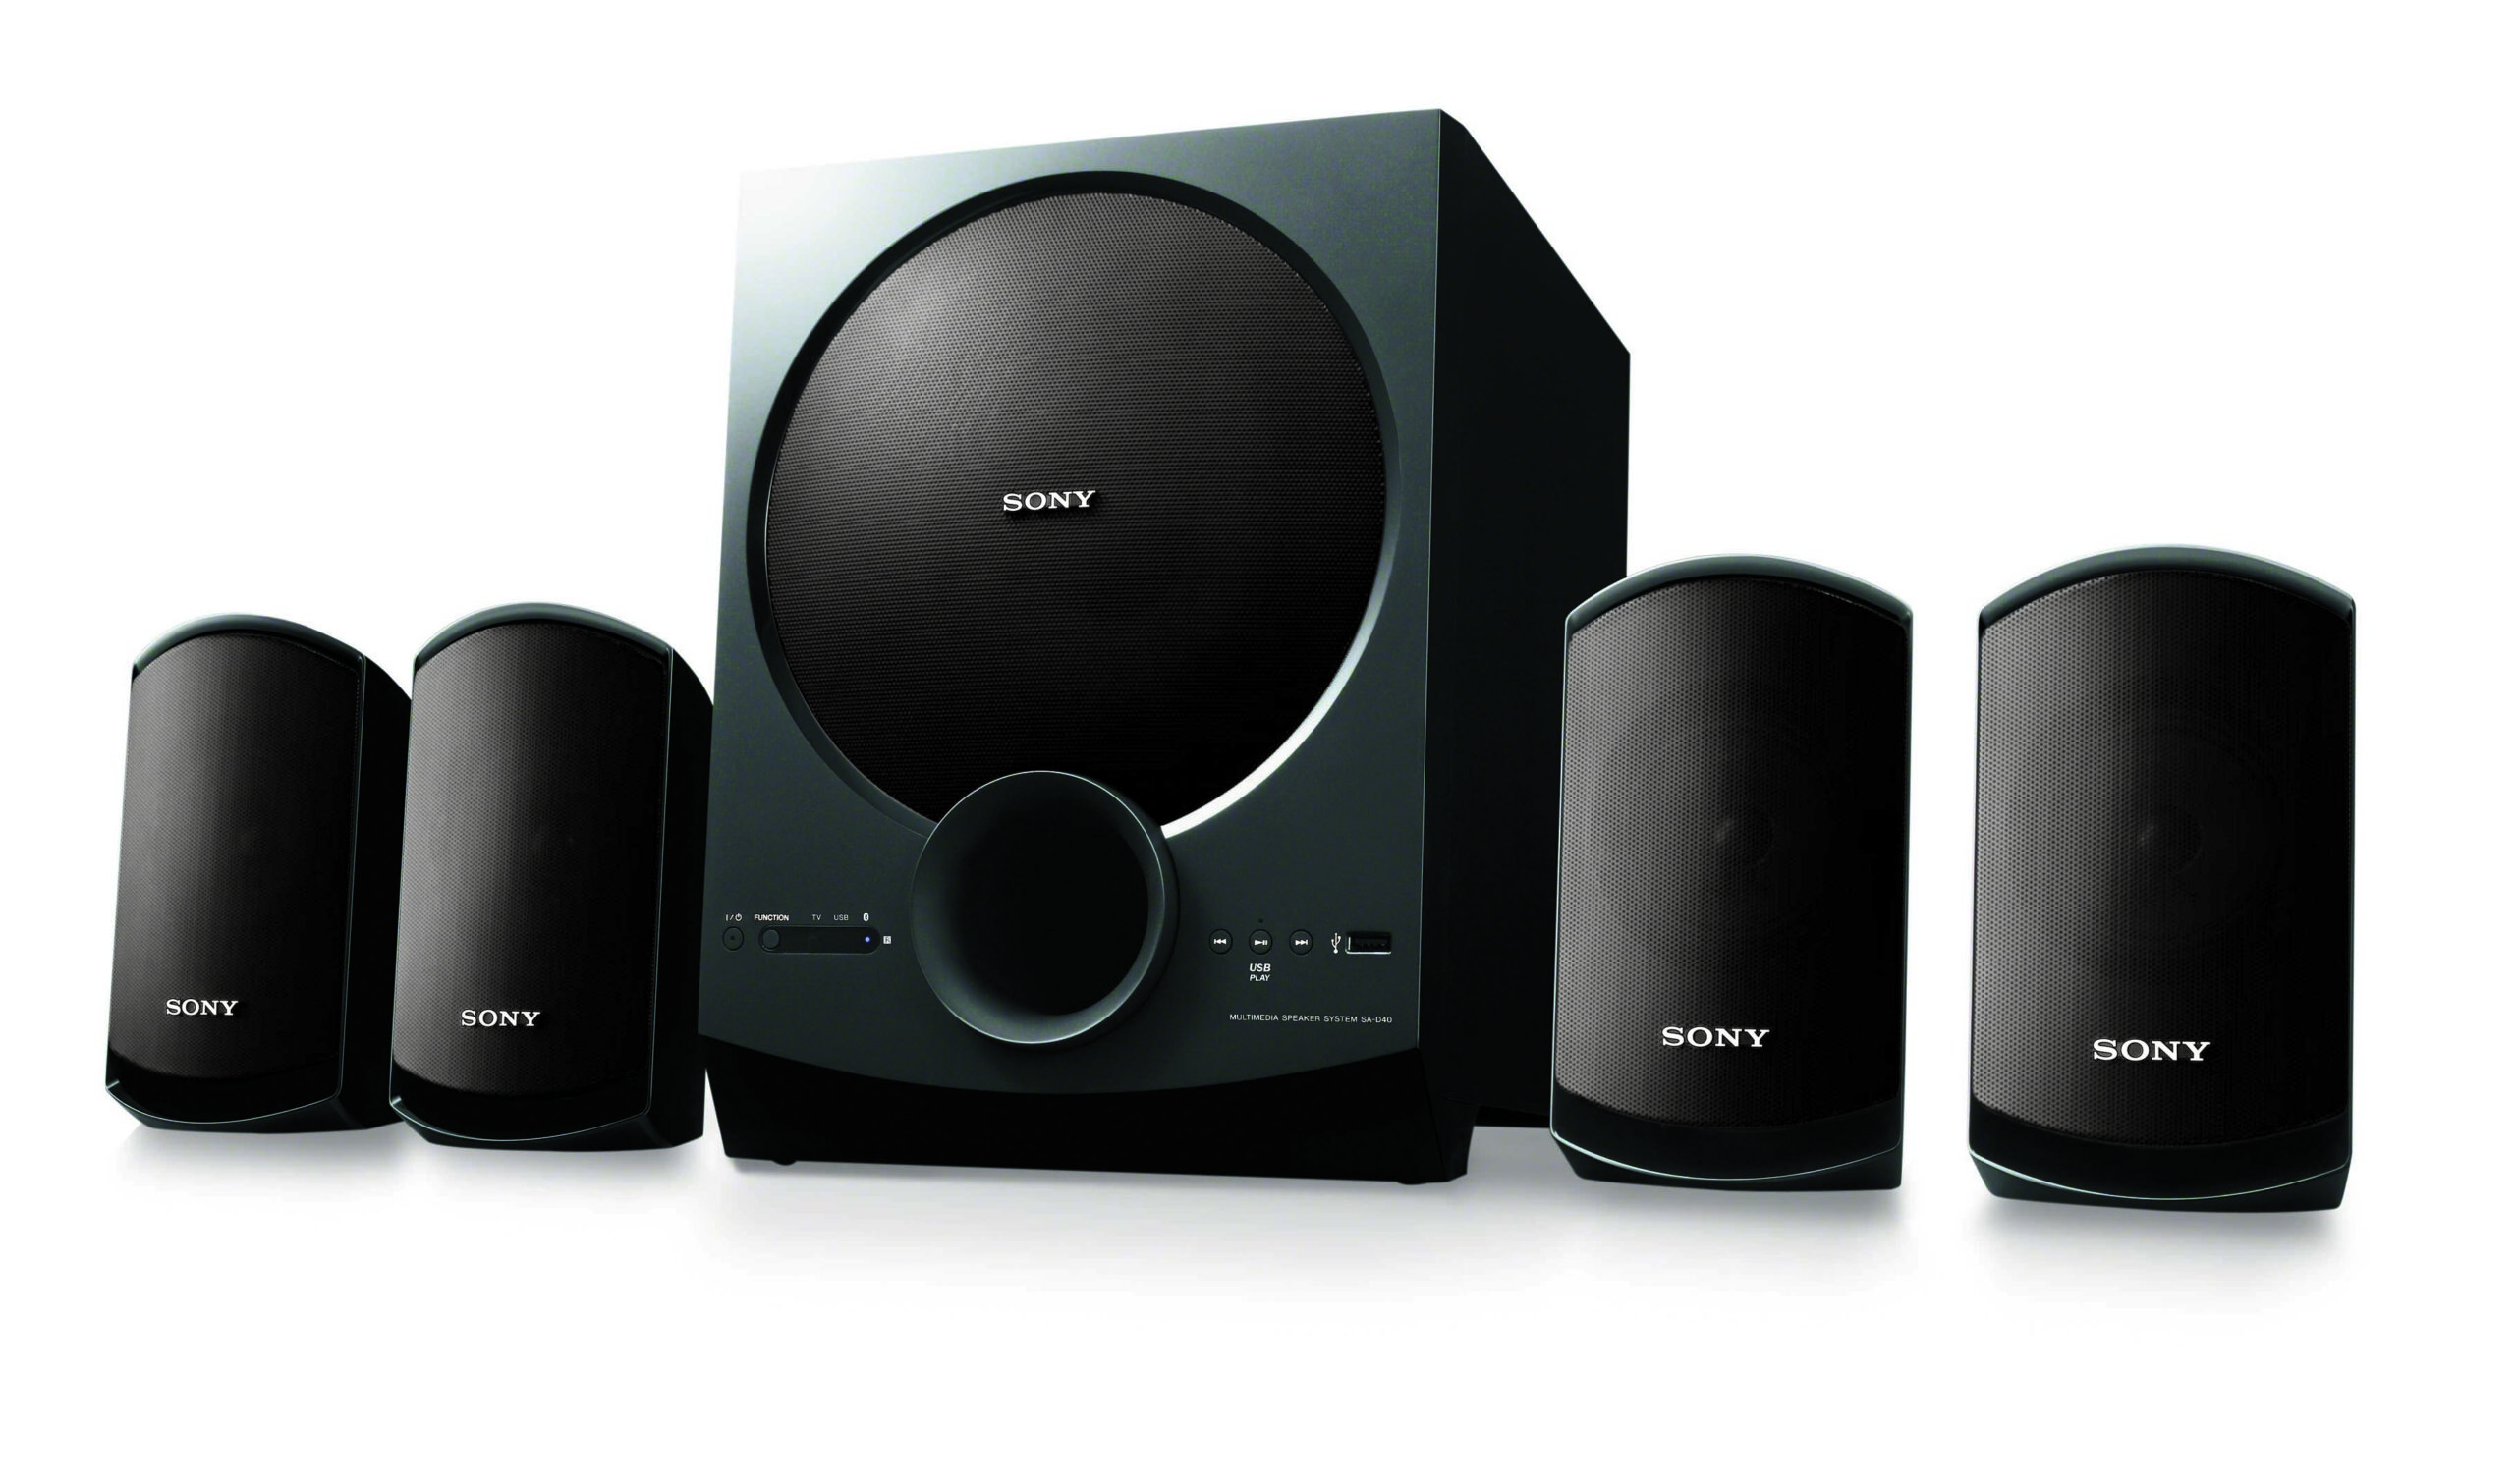 Sony SA-D40 and SA-D20  audio systems launched in India starting from Rs 6,990